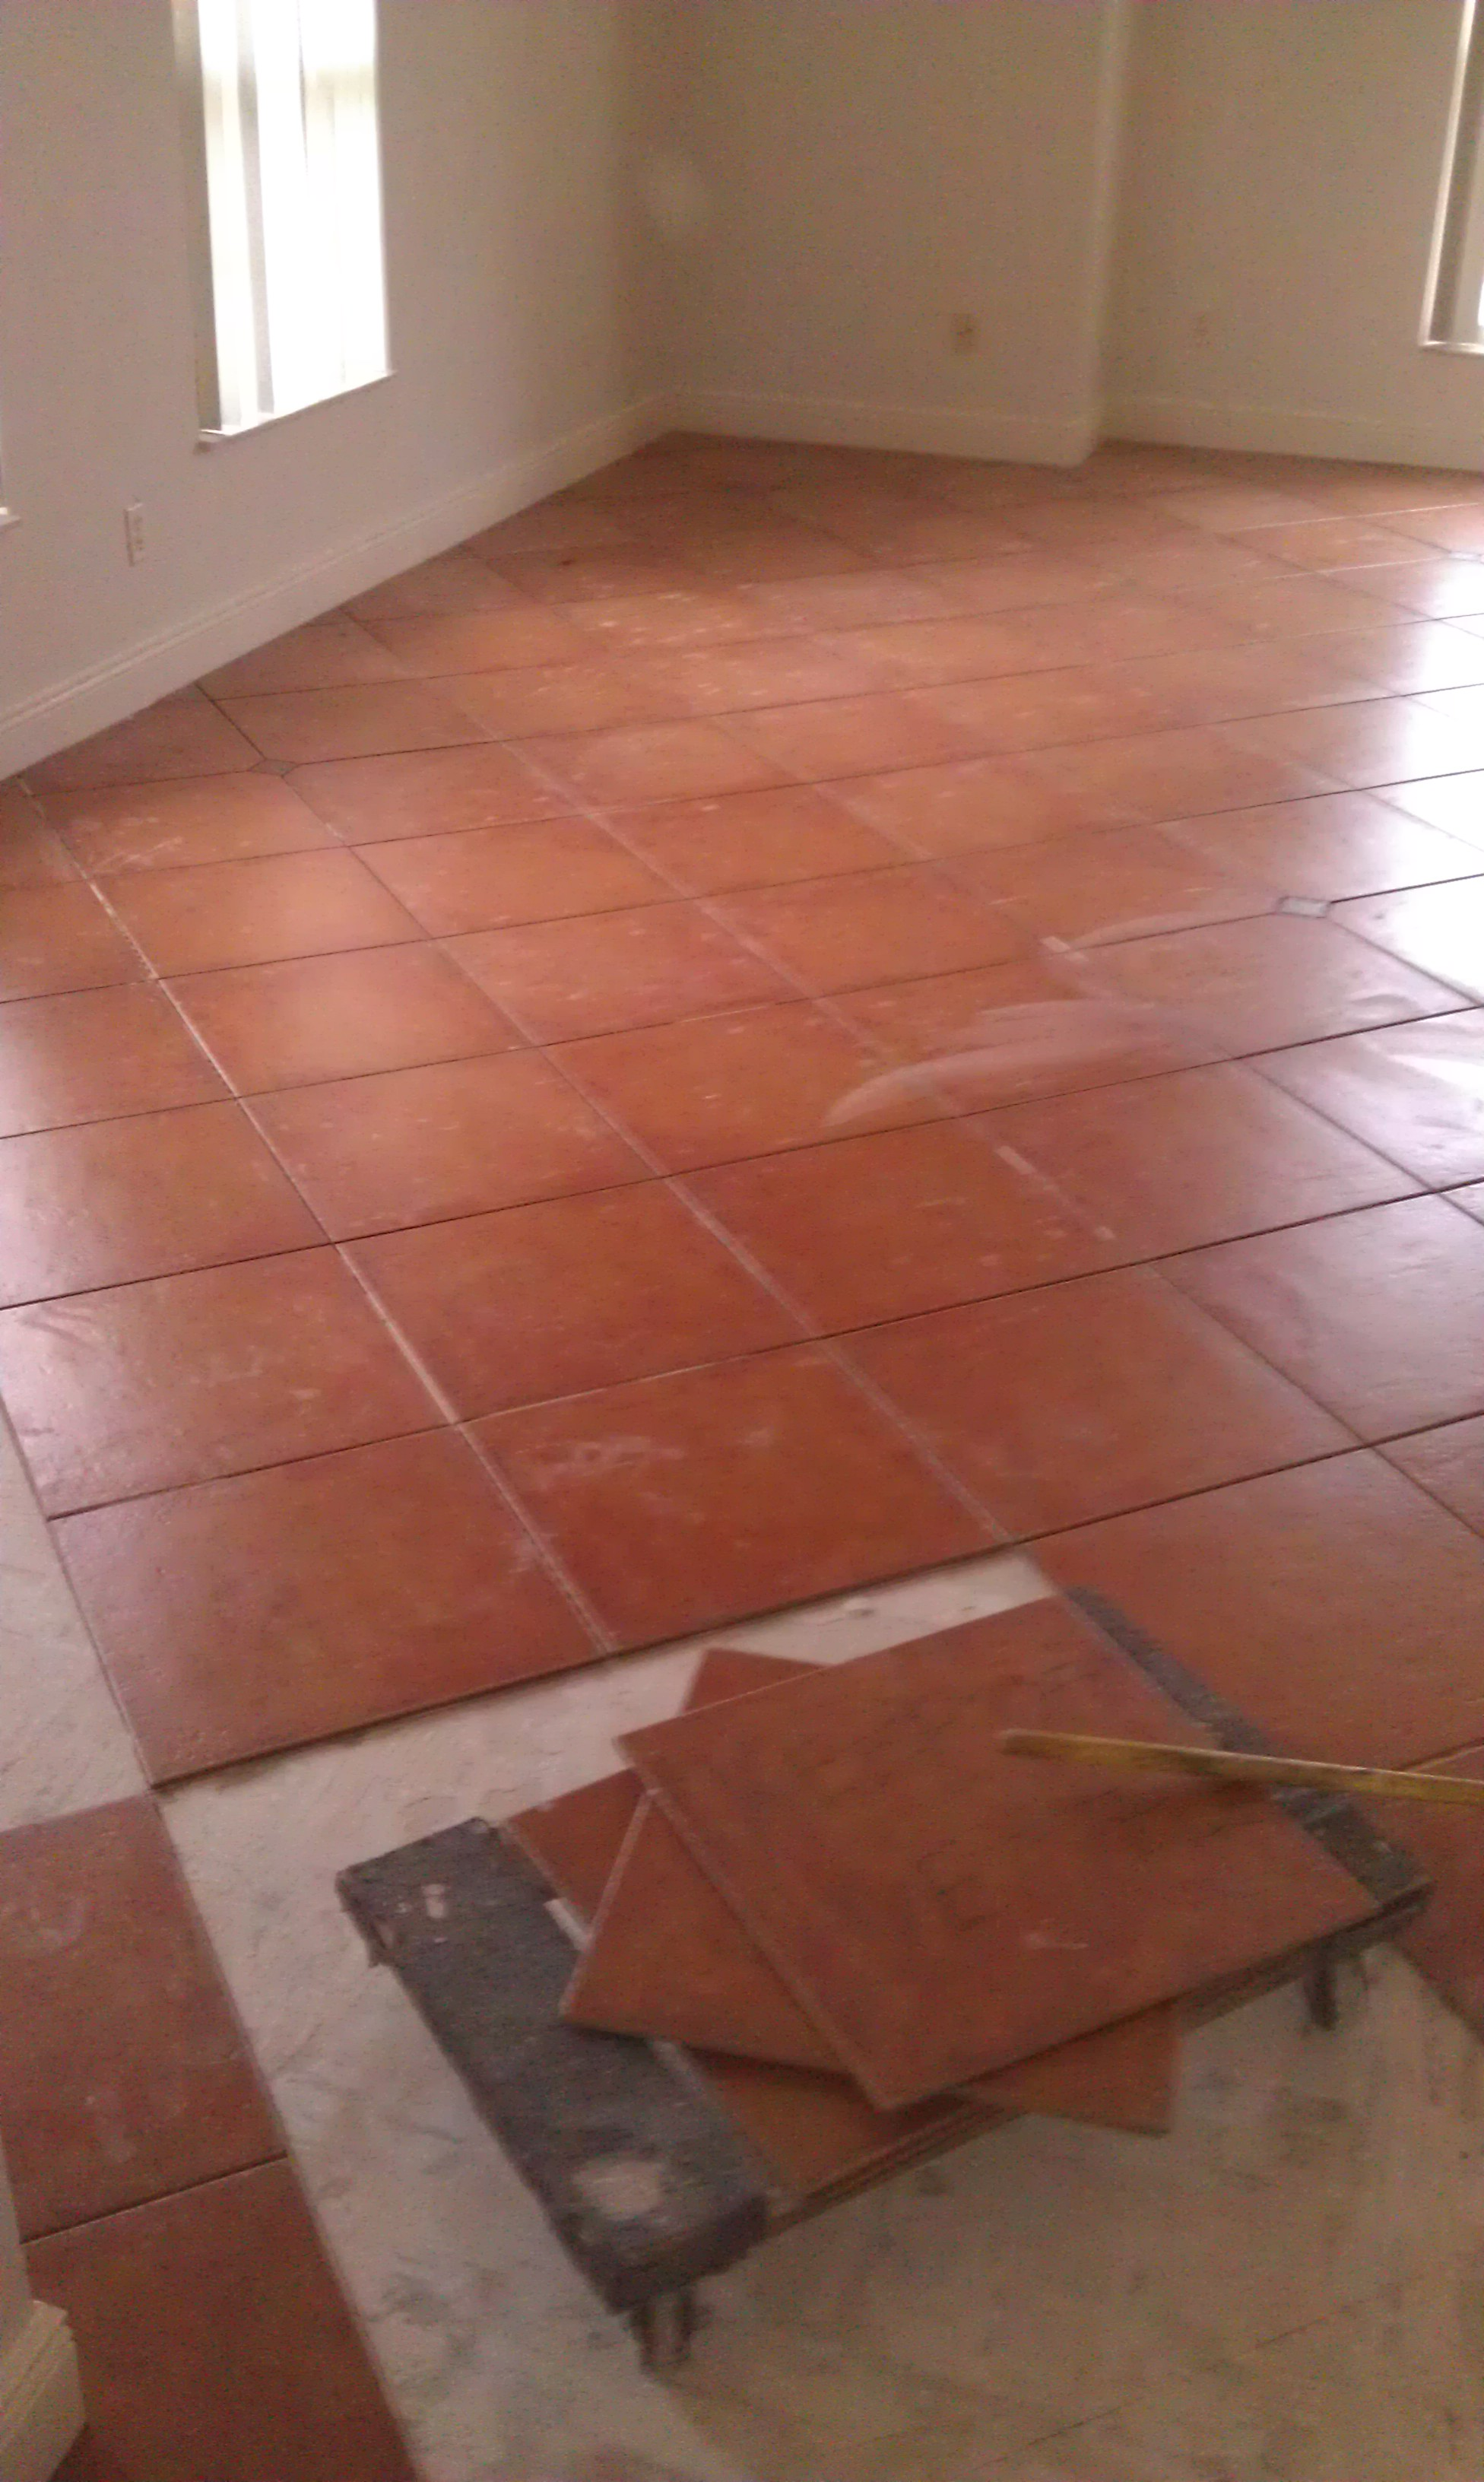 Jacksonville tile flooring specialist for home renovations for Tile floor installation